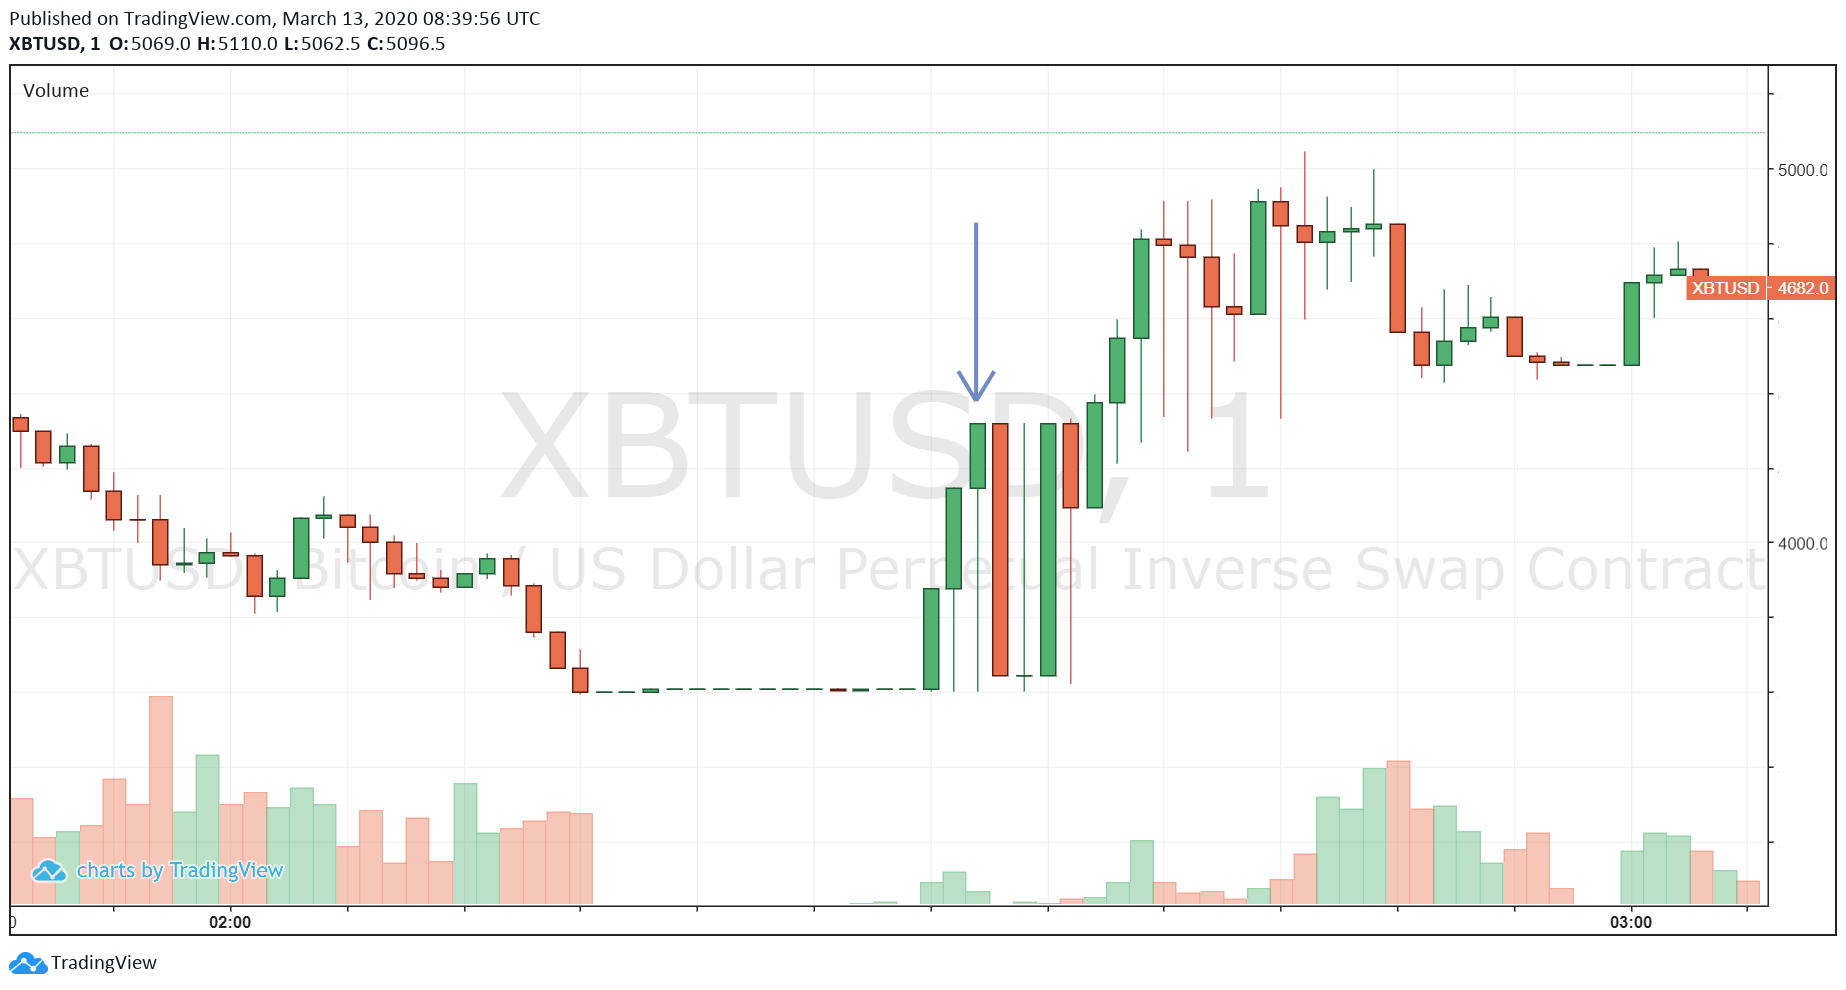 Source: XBTUSD on Trading View